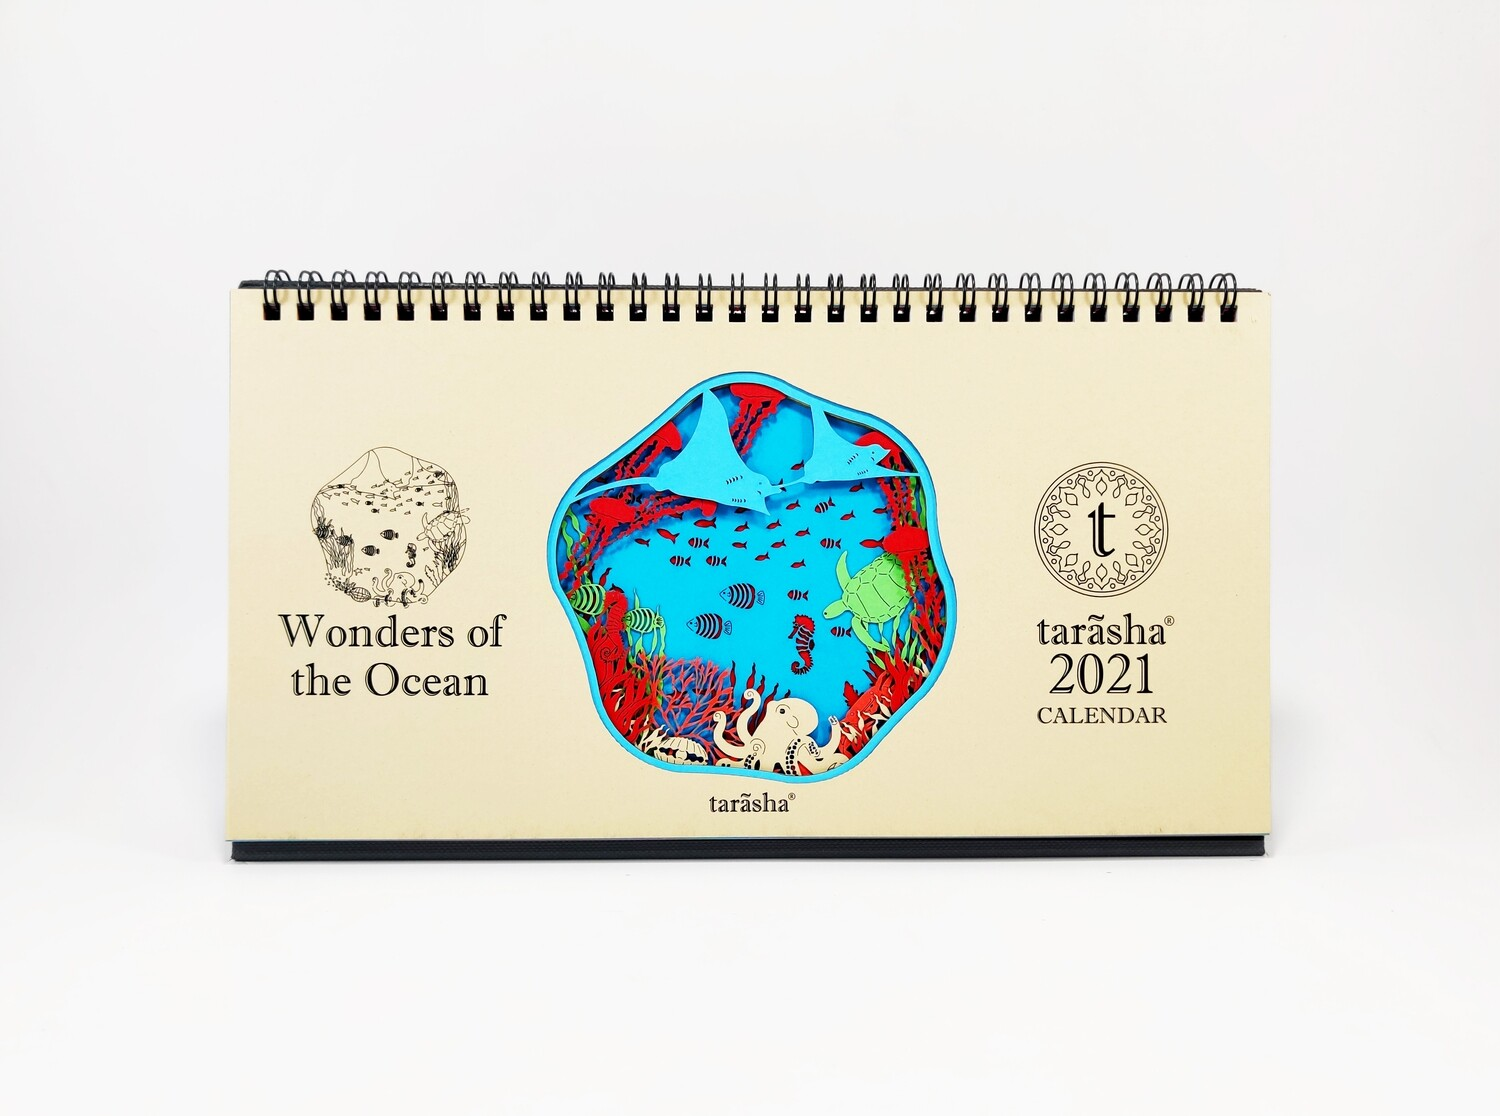 'Wonders of the Ocean' Calendar 2021